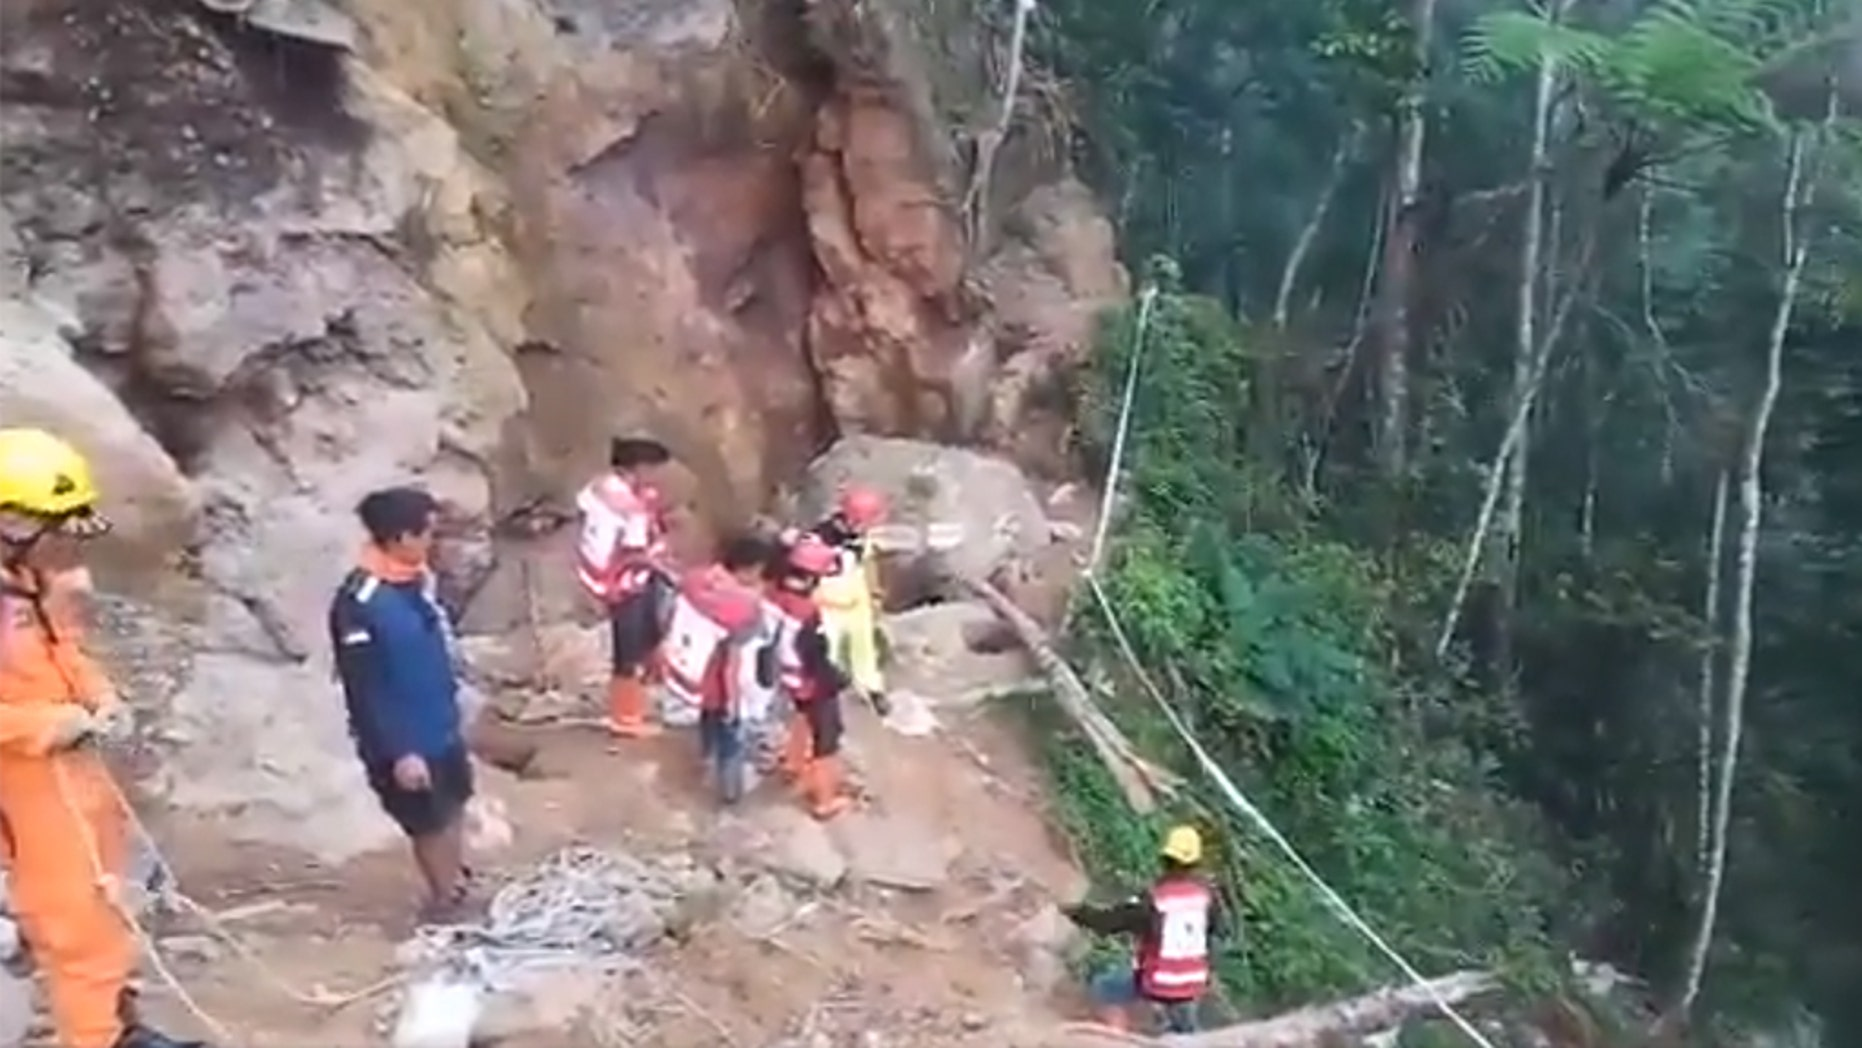 Rescue efforts are reportedly underway in Indonesia after a landslide at an unlicensed gold mine left at least one person dead, officials said Wednesday.